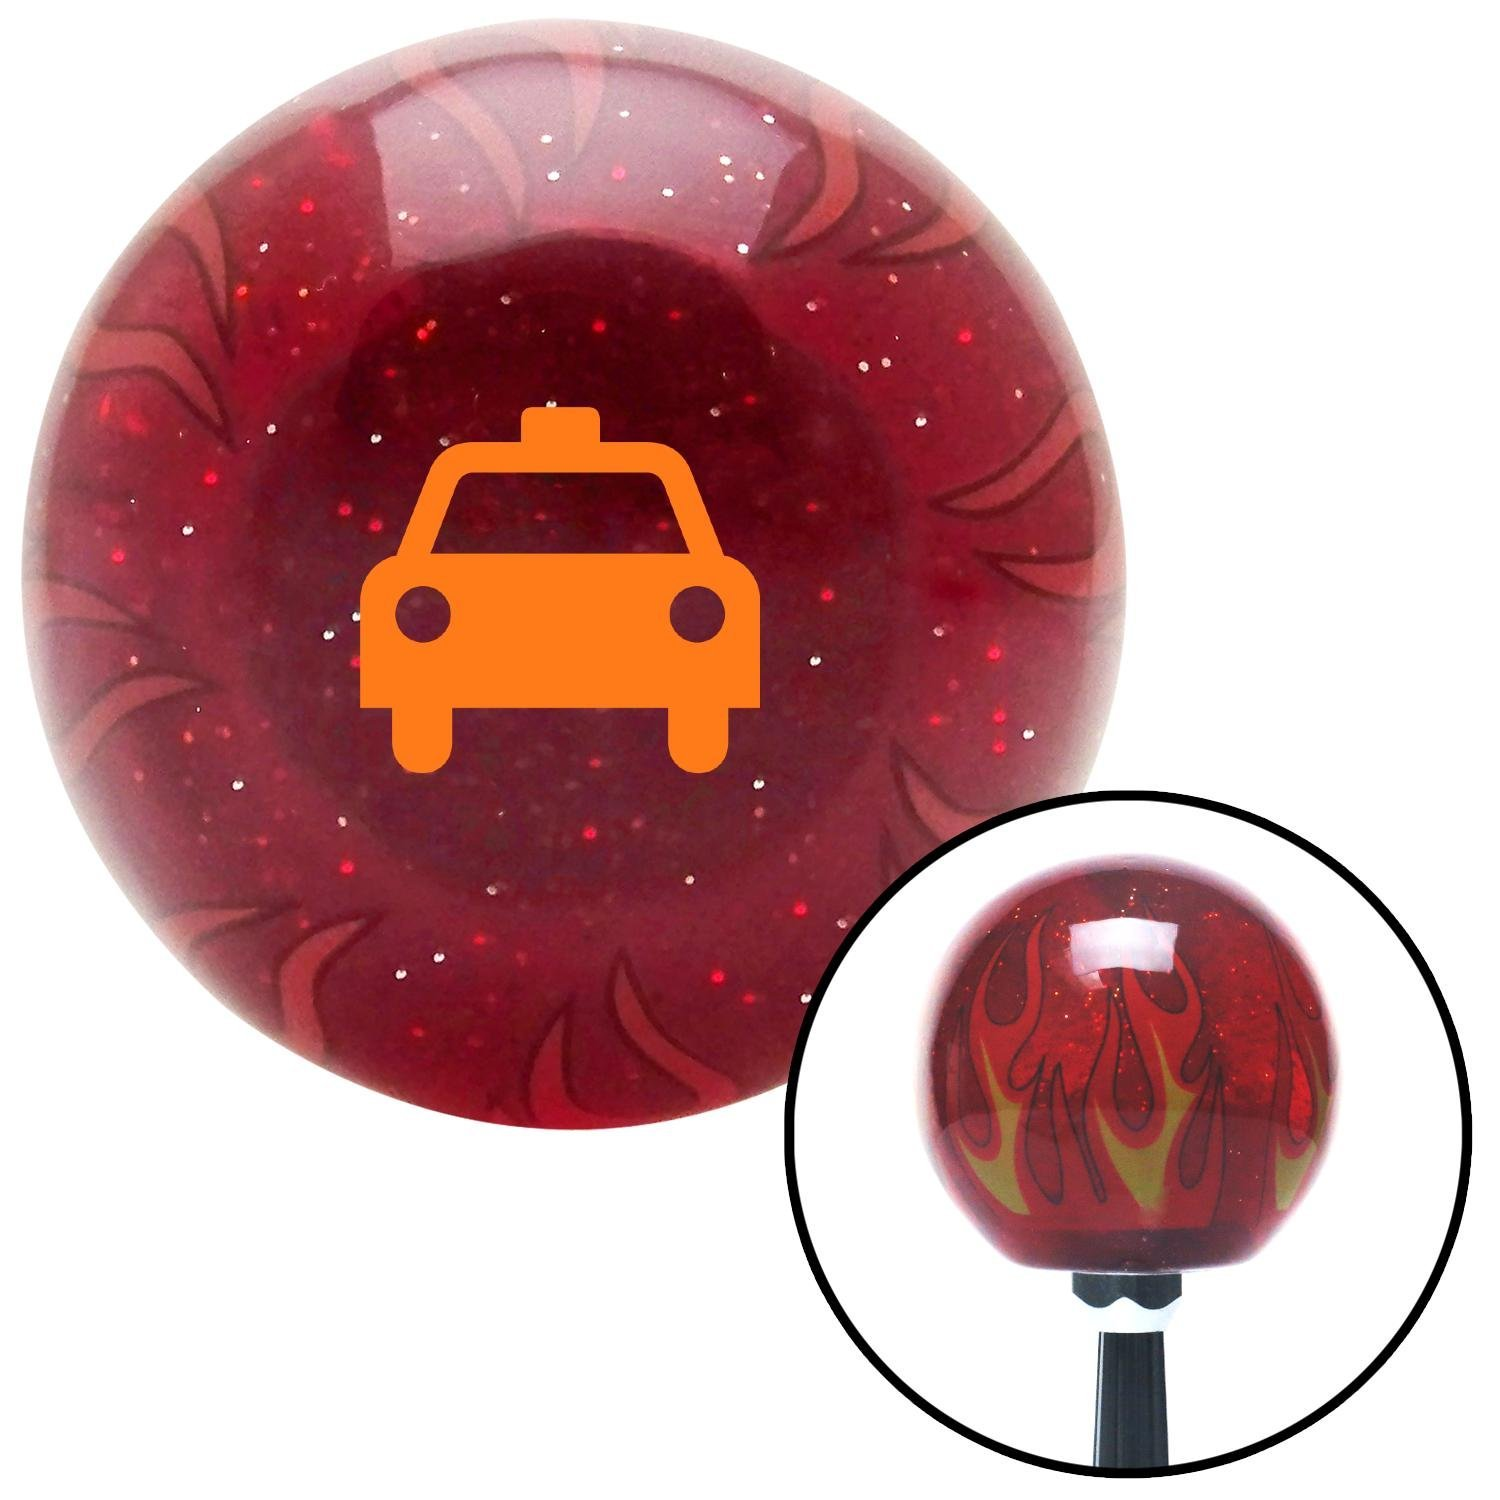 Orange Taxi American Shifter 240285 Red Flame Metal Flake Shift Knob with M16 x 1.5 Insert